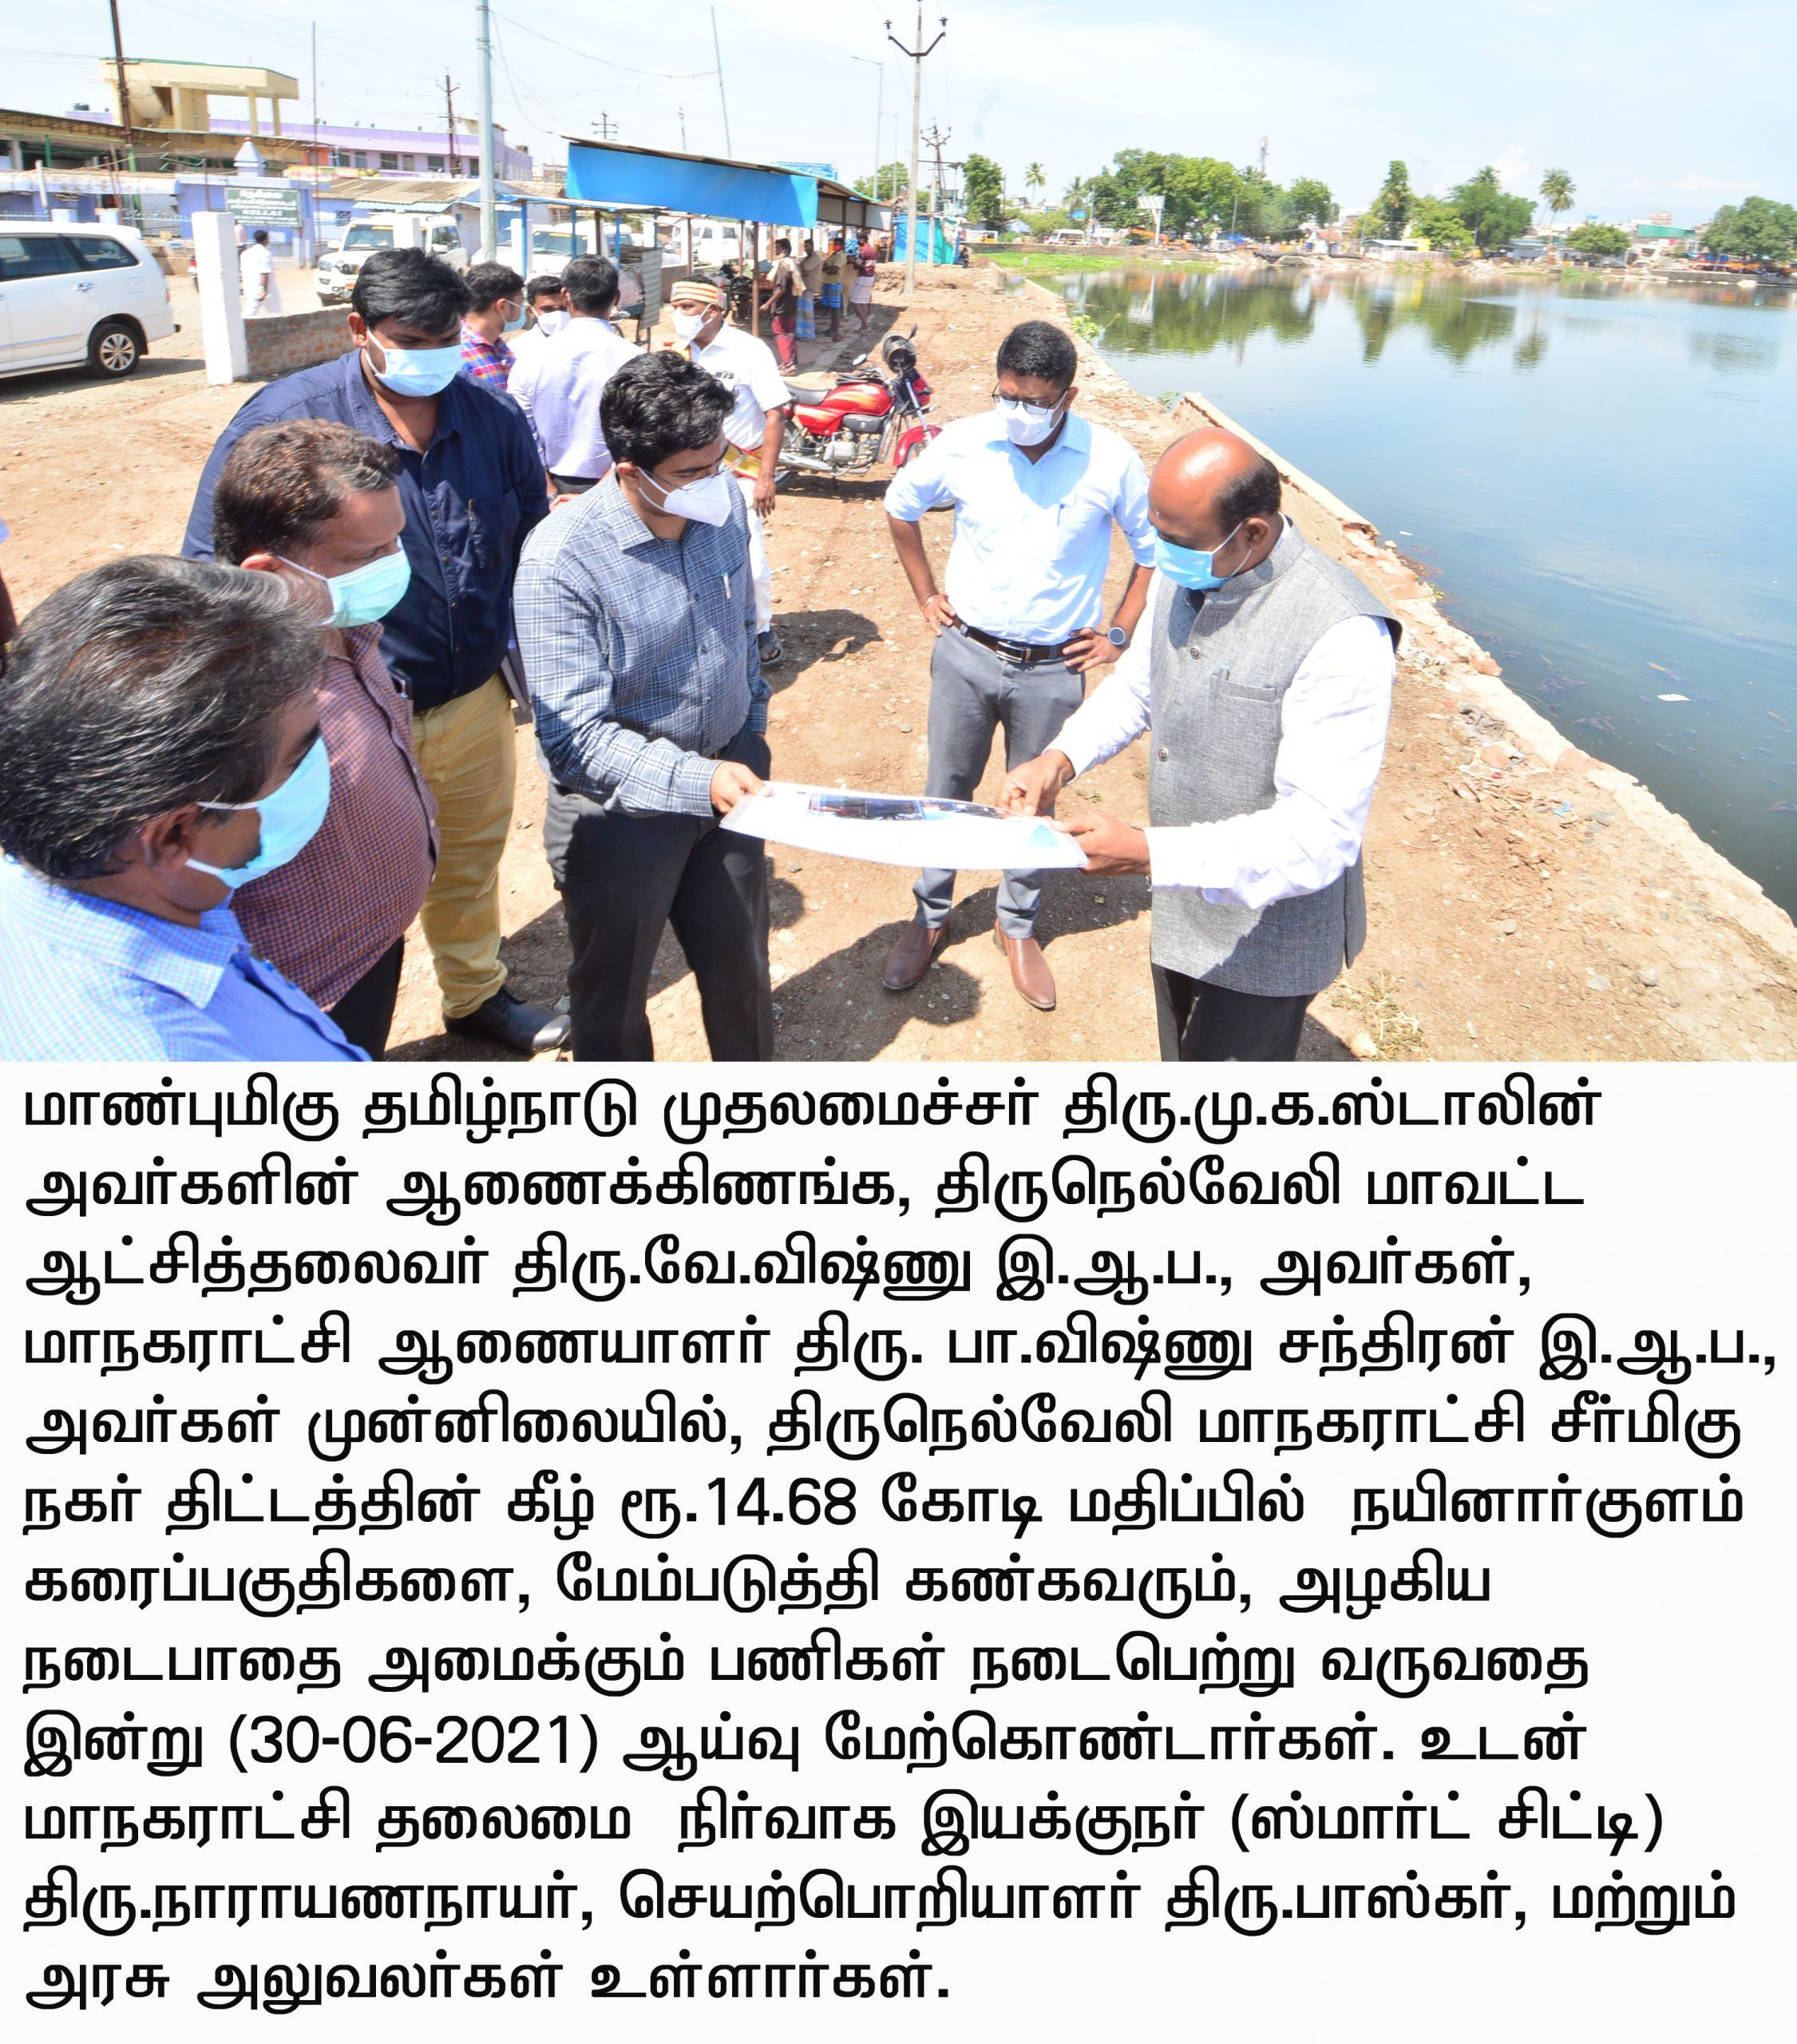 District Collector inspected the Palai Bus Stand, New Bus Stand and Nainarkulam area under the Smart City Project in Corporation